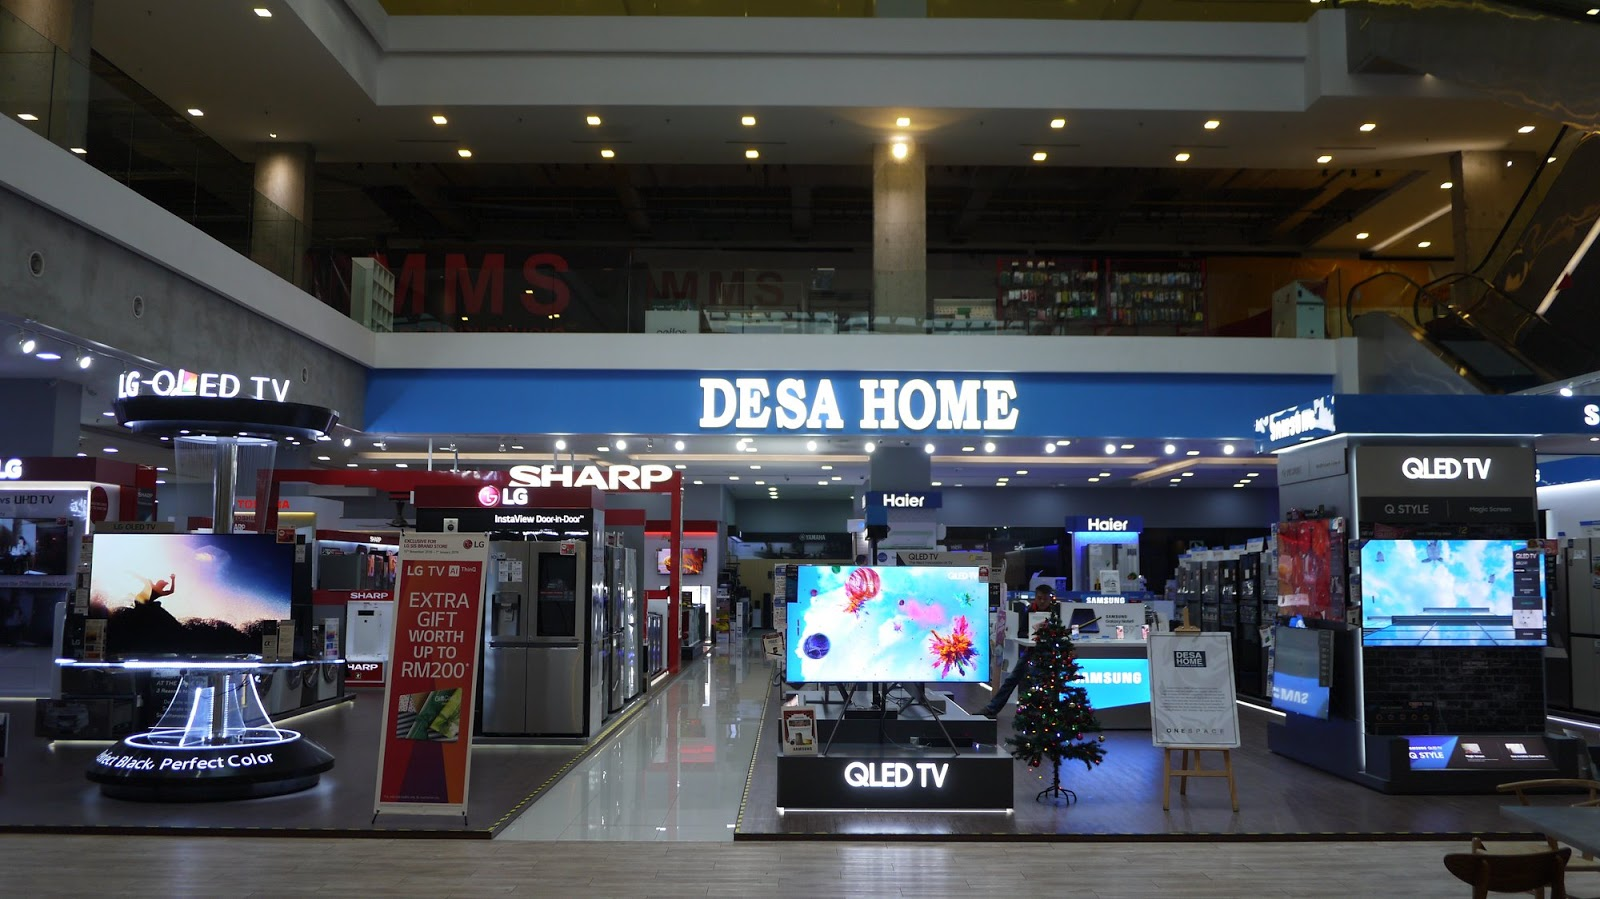 hight resolution of desa home one city s branch is very huge and well organised occupies a 1 394sq m space we can find home entertainment systems including audiovisual